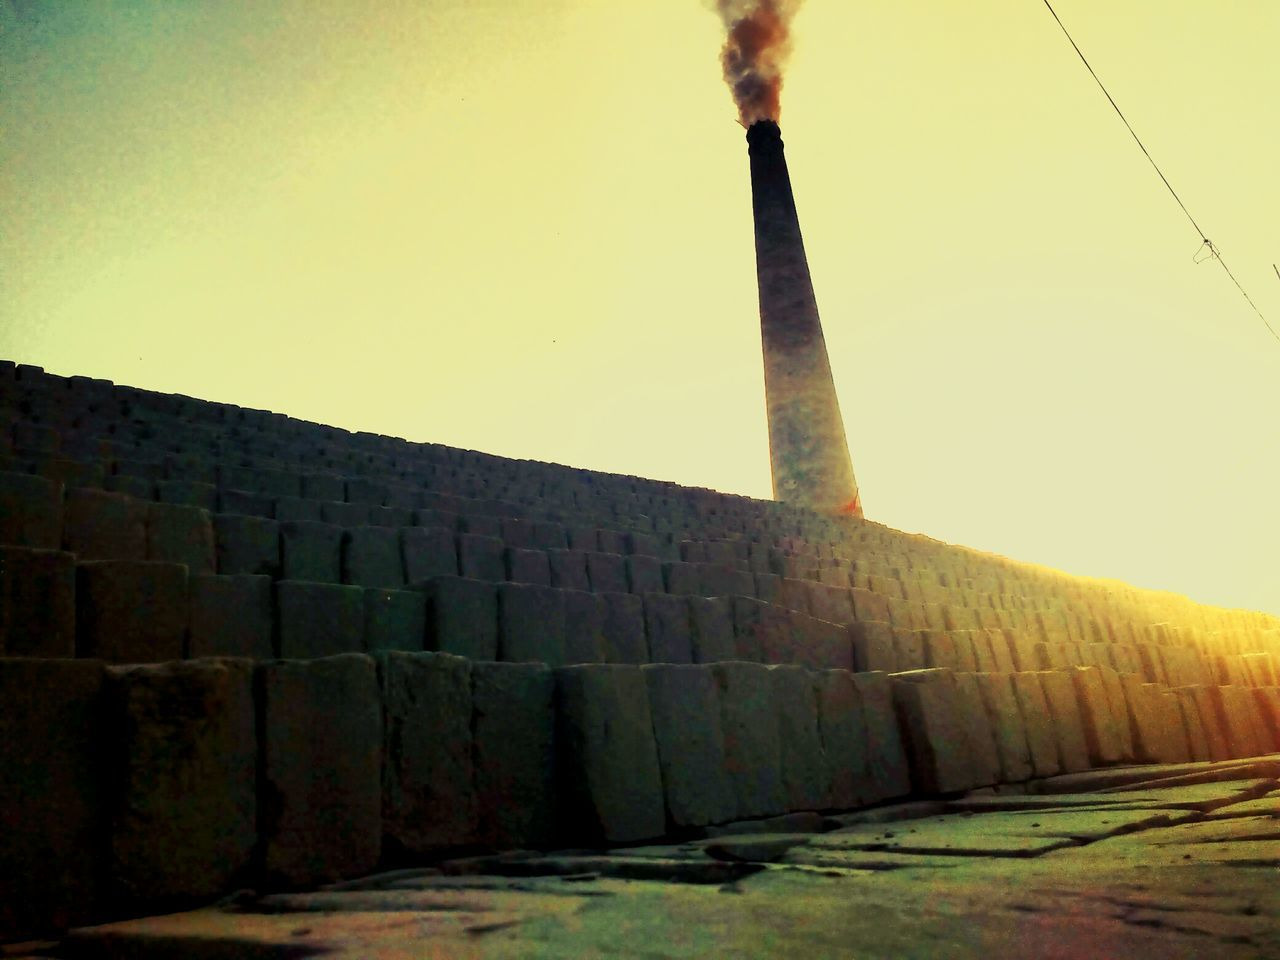 How Do We Build The World? Bricks Foundation Structural Unit Chimney Smoke Pollution Village Photography Factory Chimney Eyemphotography Check This Out Beautifully Organized